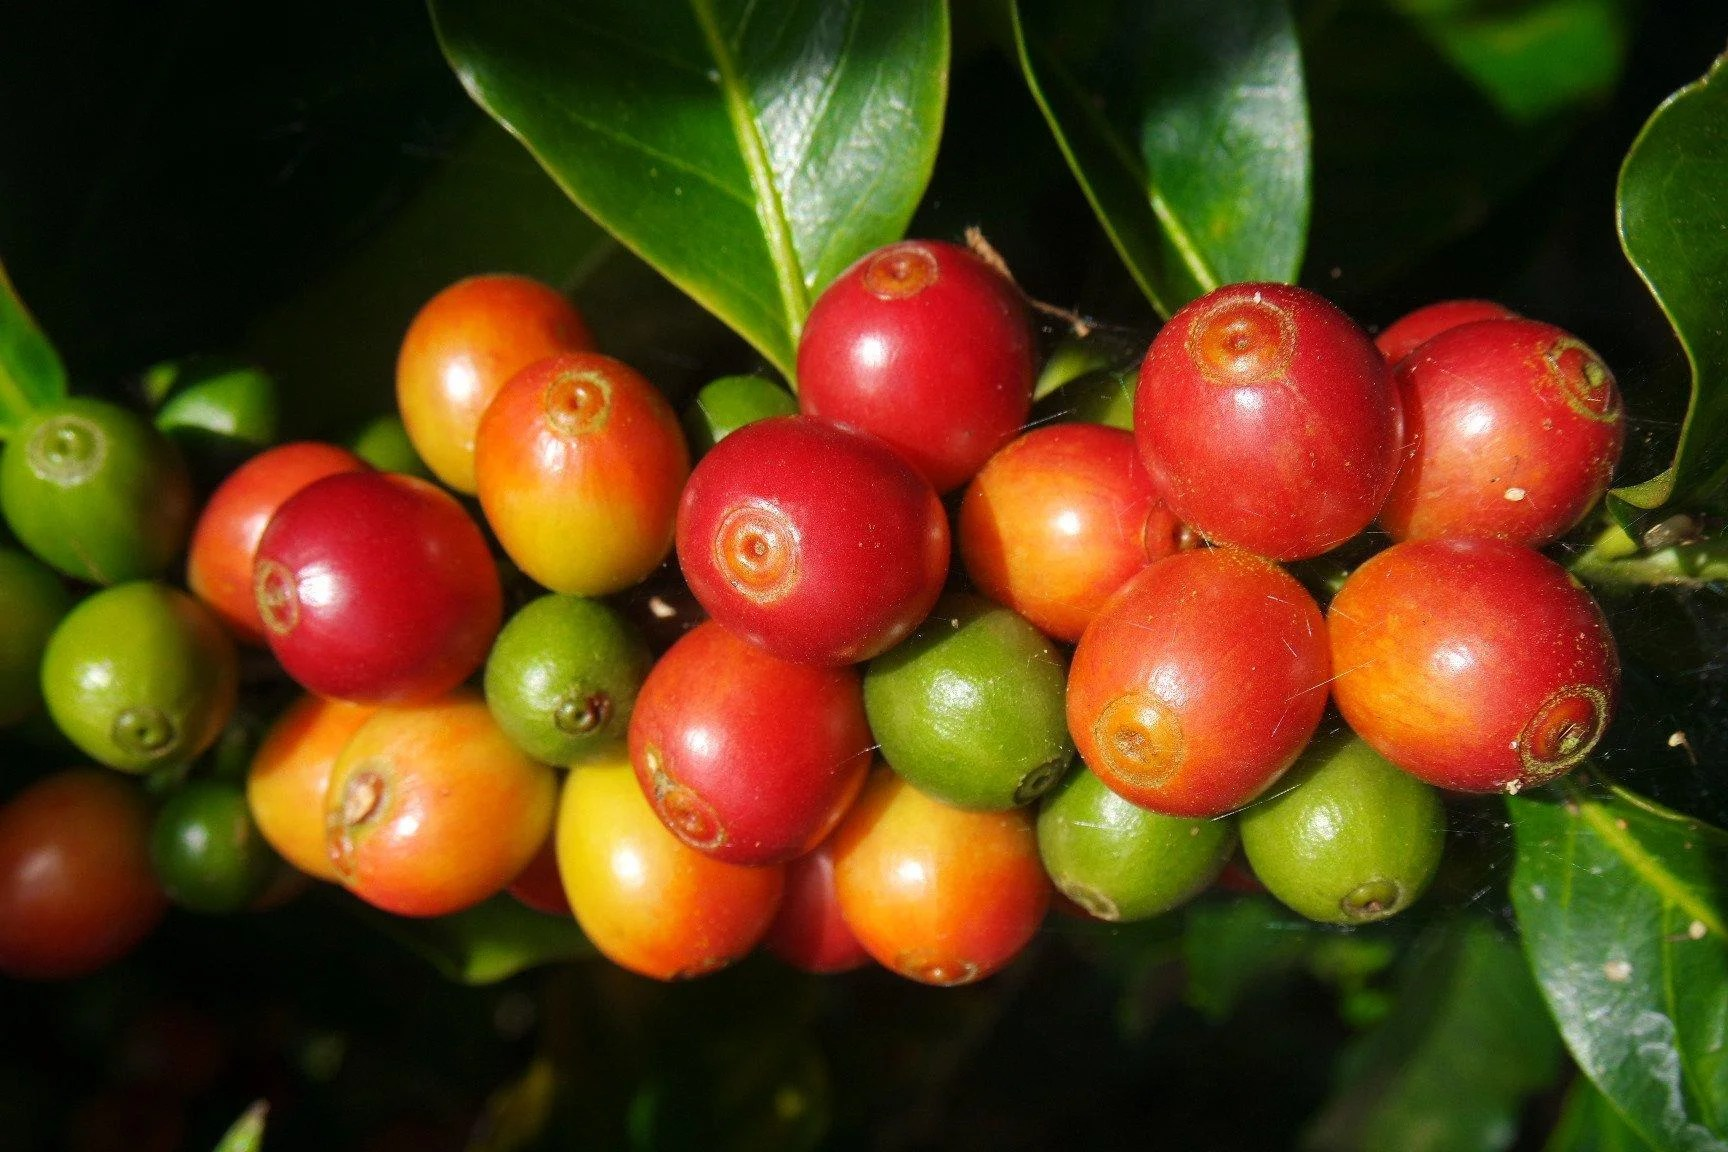 Costa Coffee Arabica Robusta Single Origin Arabica Coffee Beans From Costa Rica El